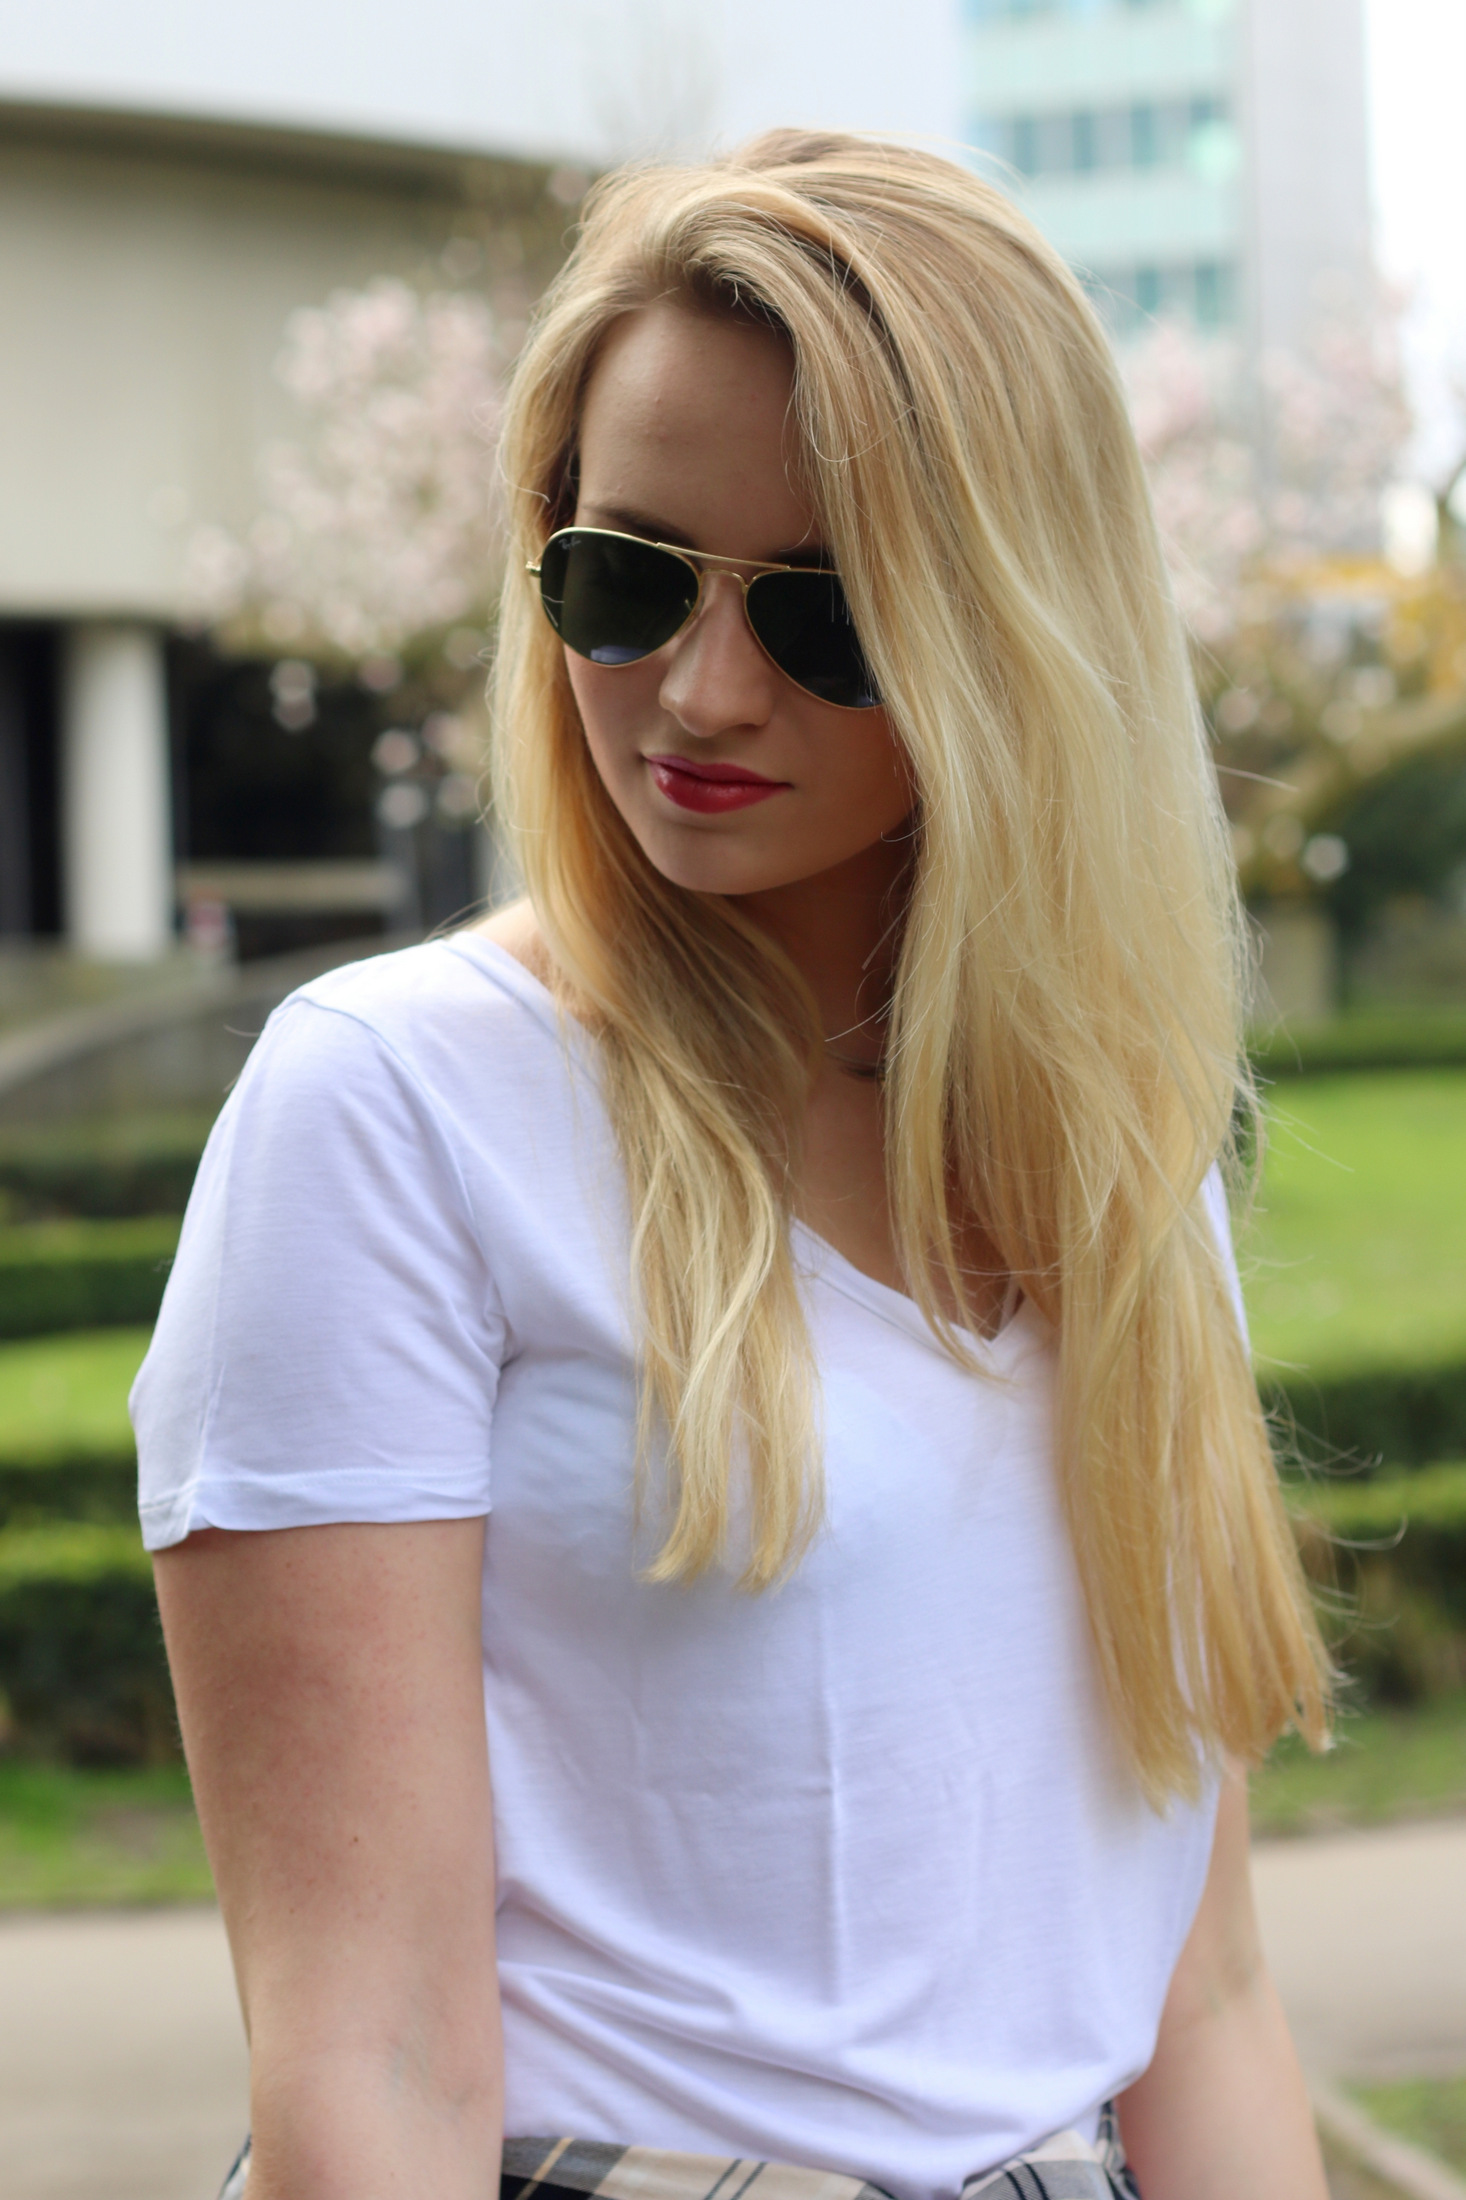 plain-shirt-white-tee-jeans-casual-look-outfit-ootd-blogger-mrsbrightside (3)